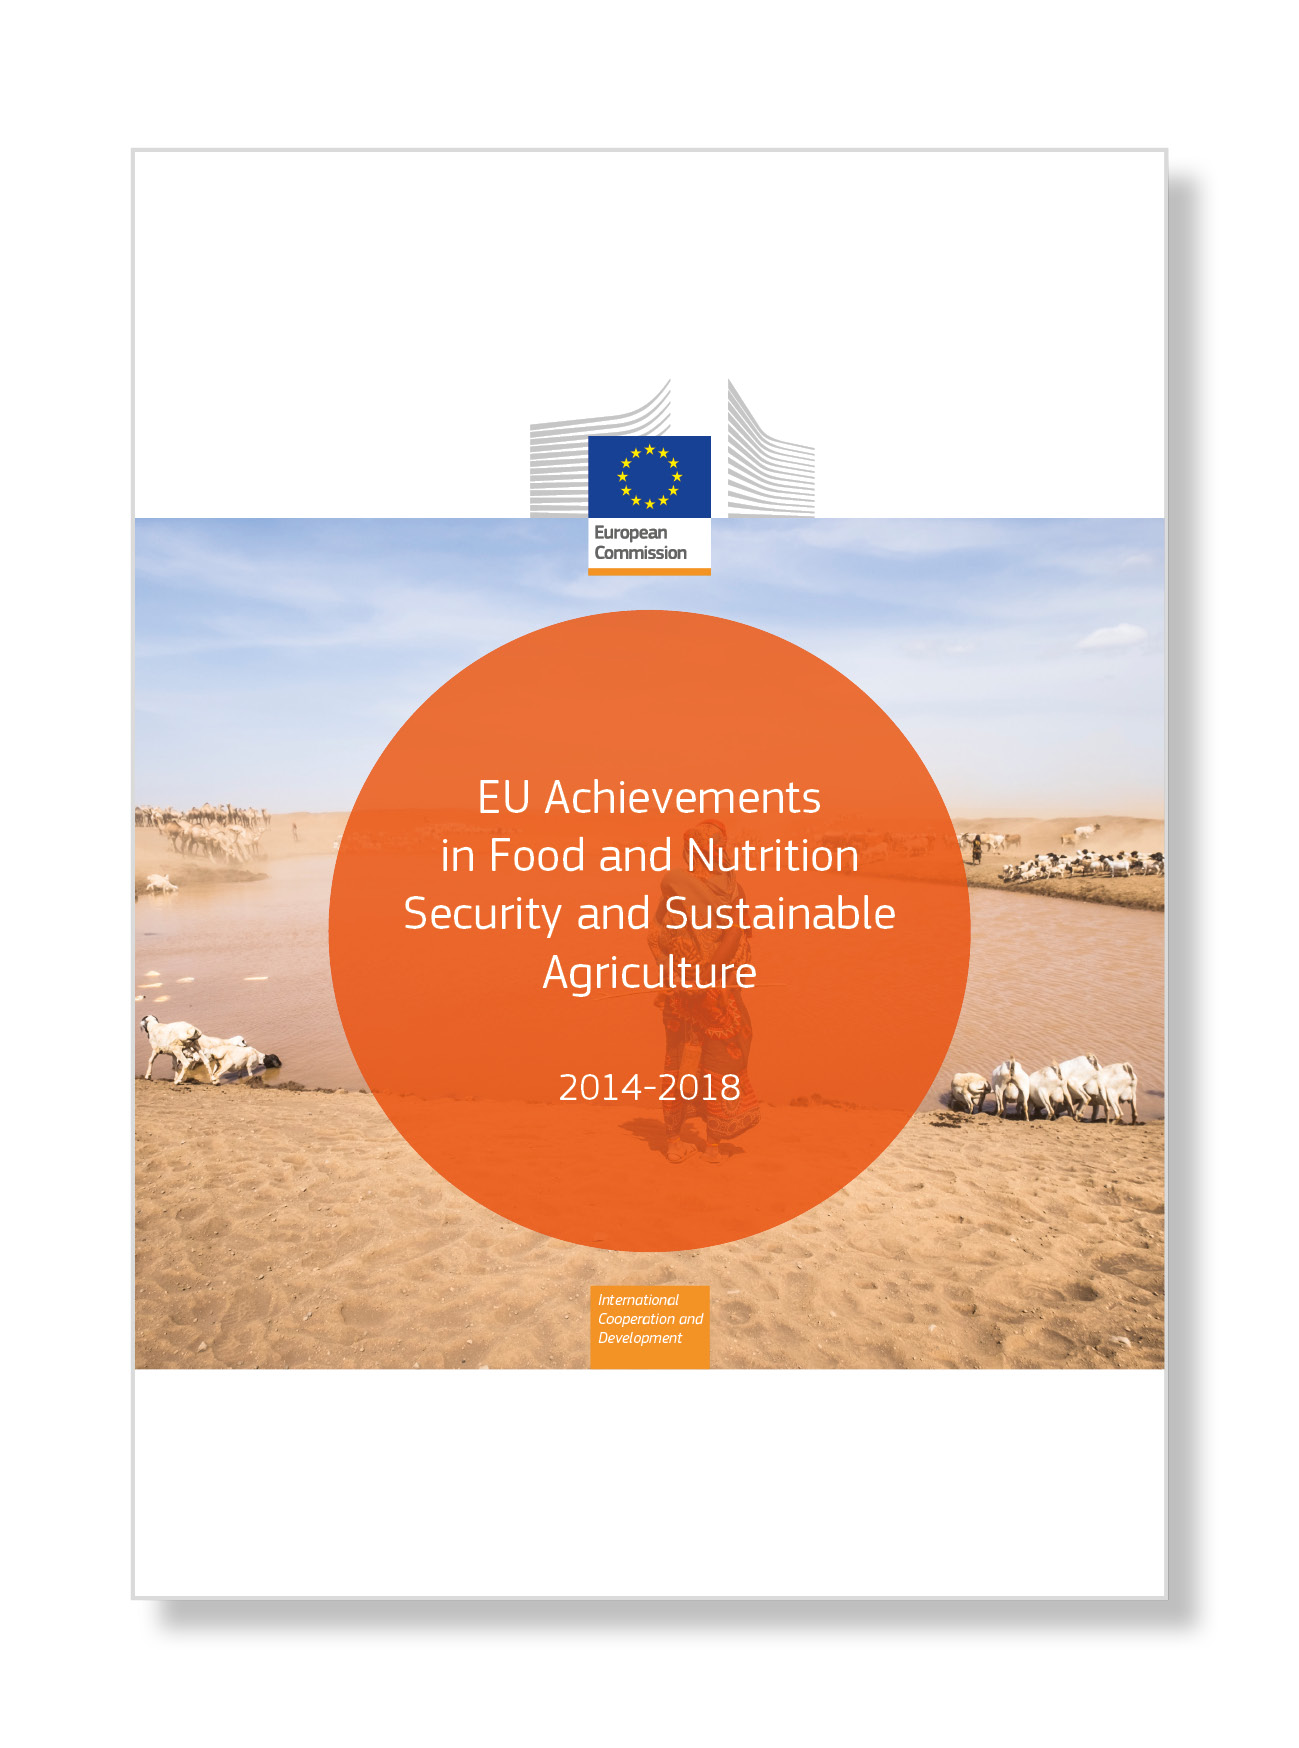 Brochure: EU Achievements in Food and Nutrition Security and Sustainable Agriculture